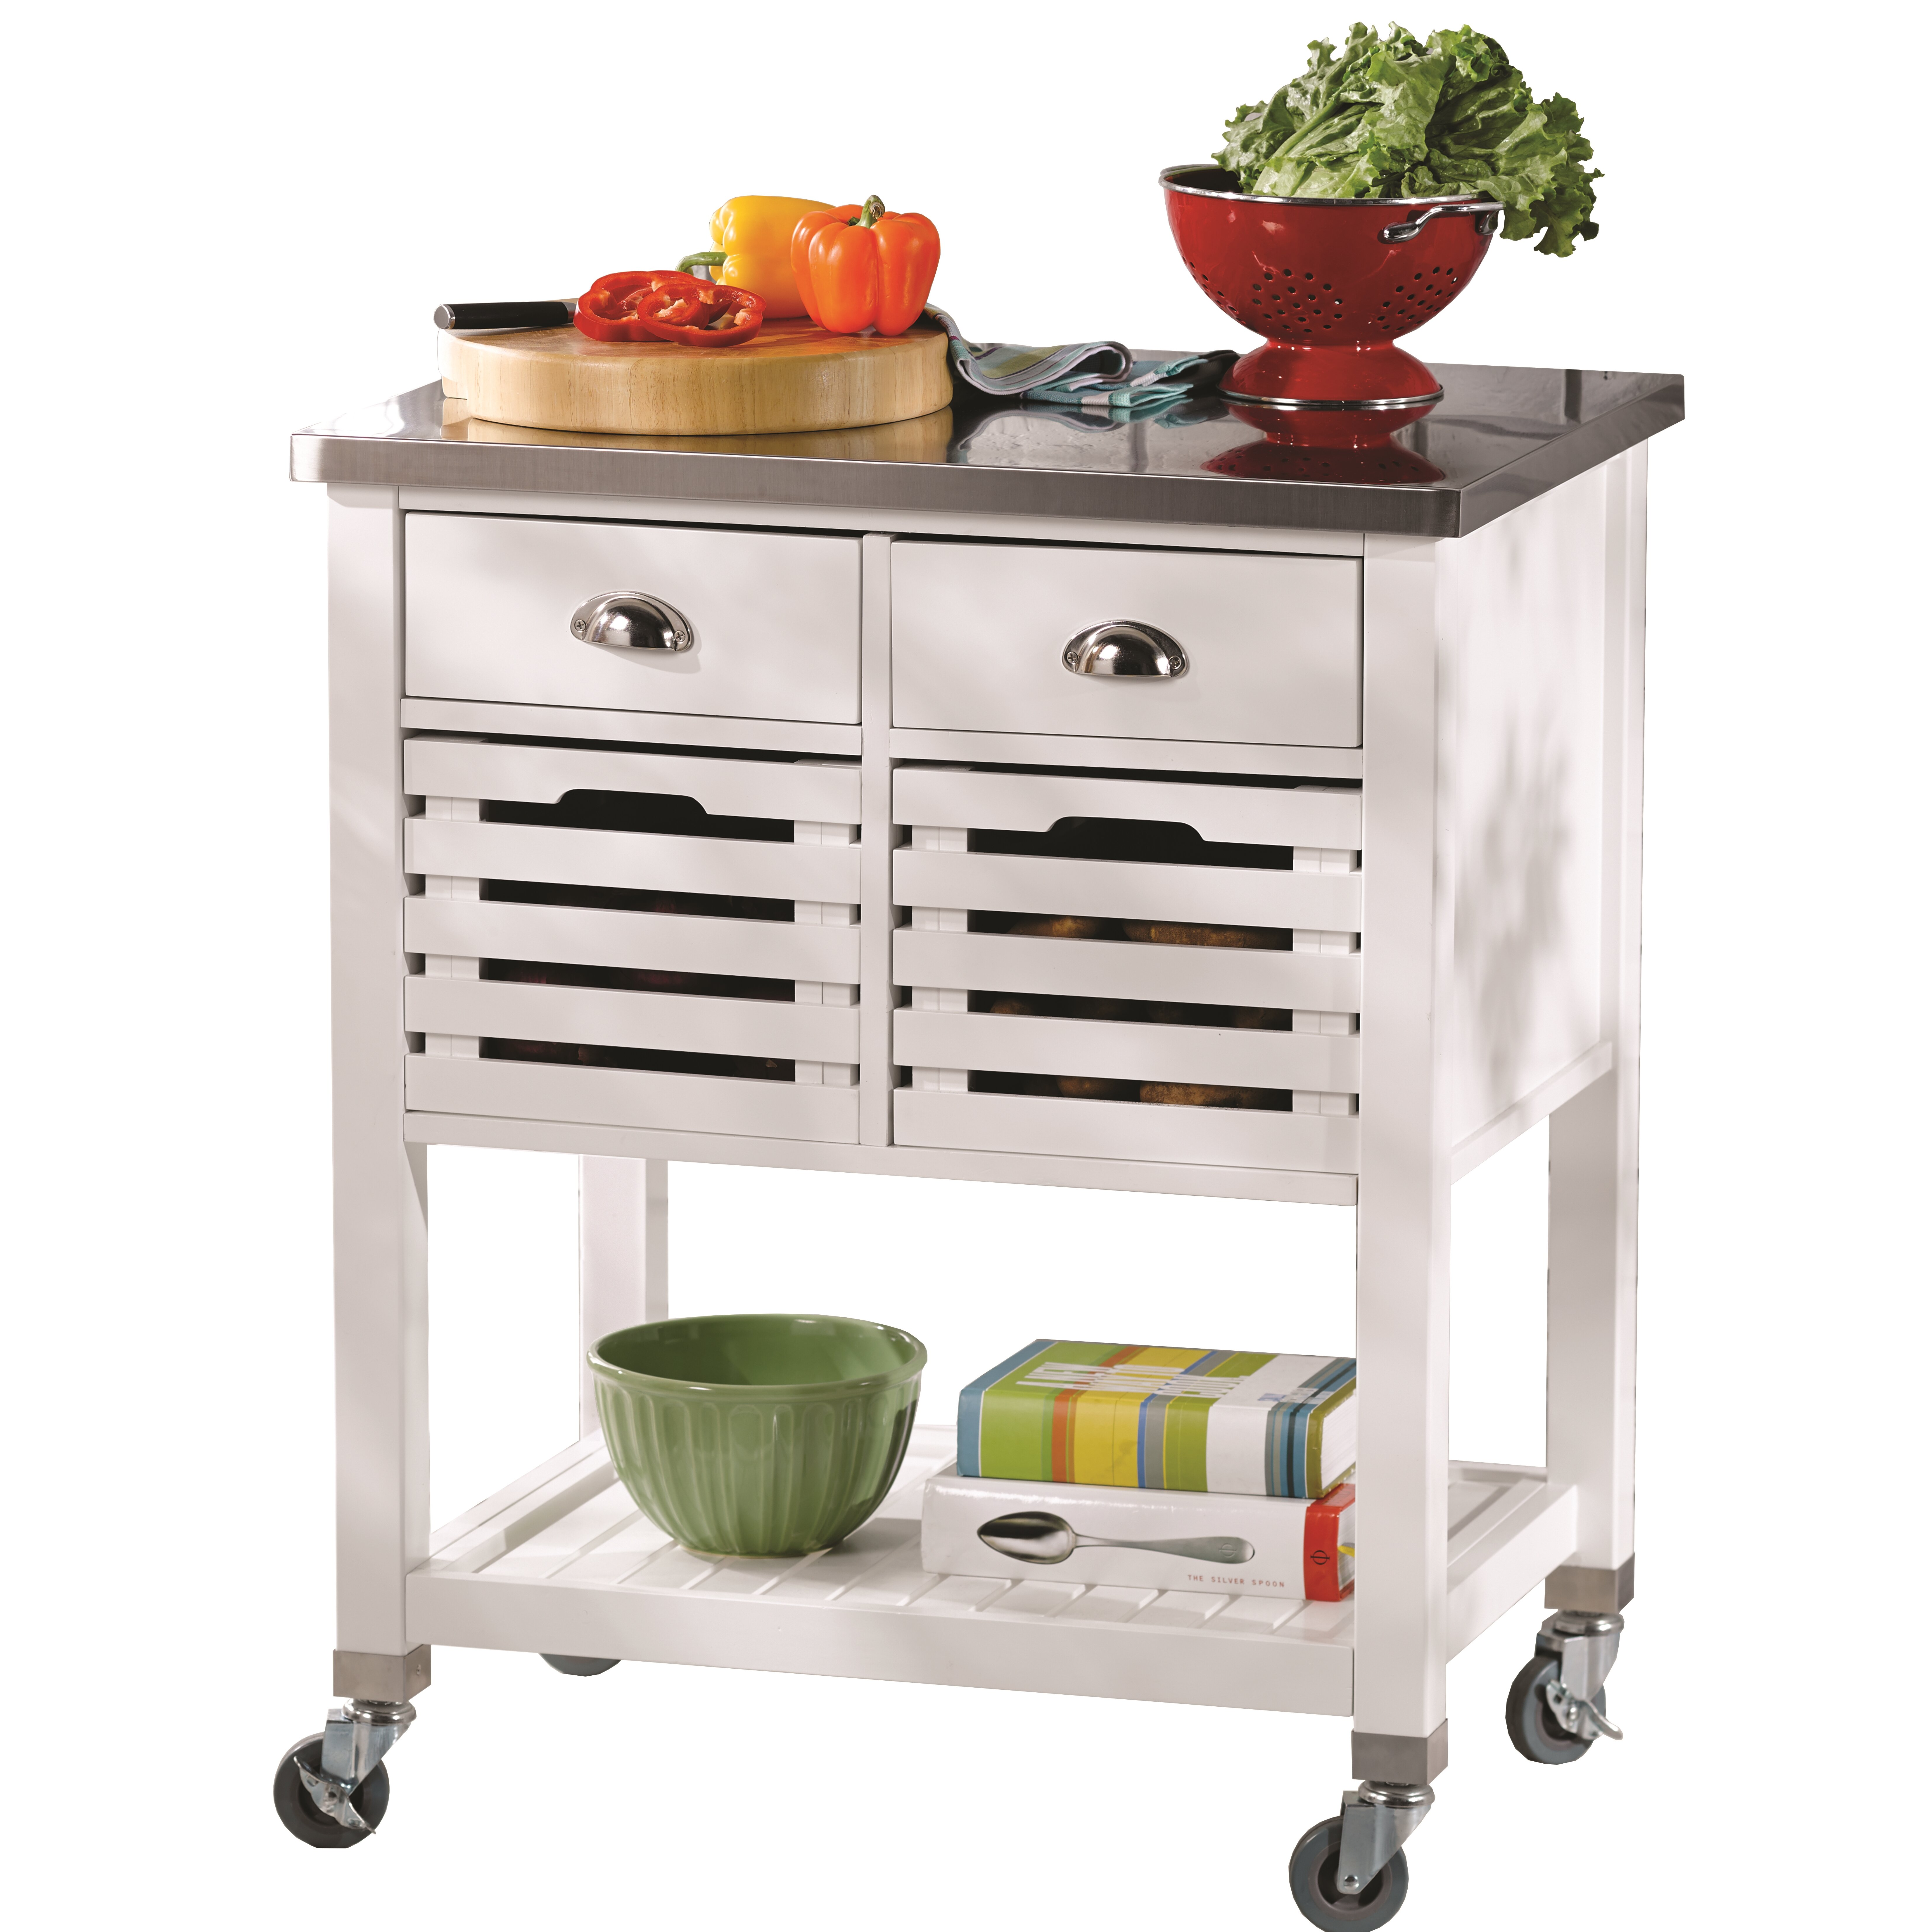 Andover Mills Kitchen Cart With Stainless Steel Top Reviews Wayfair